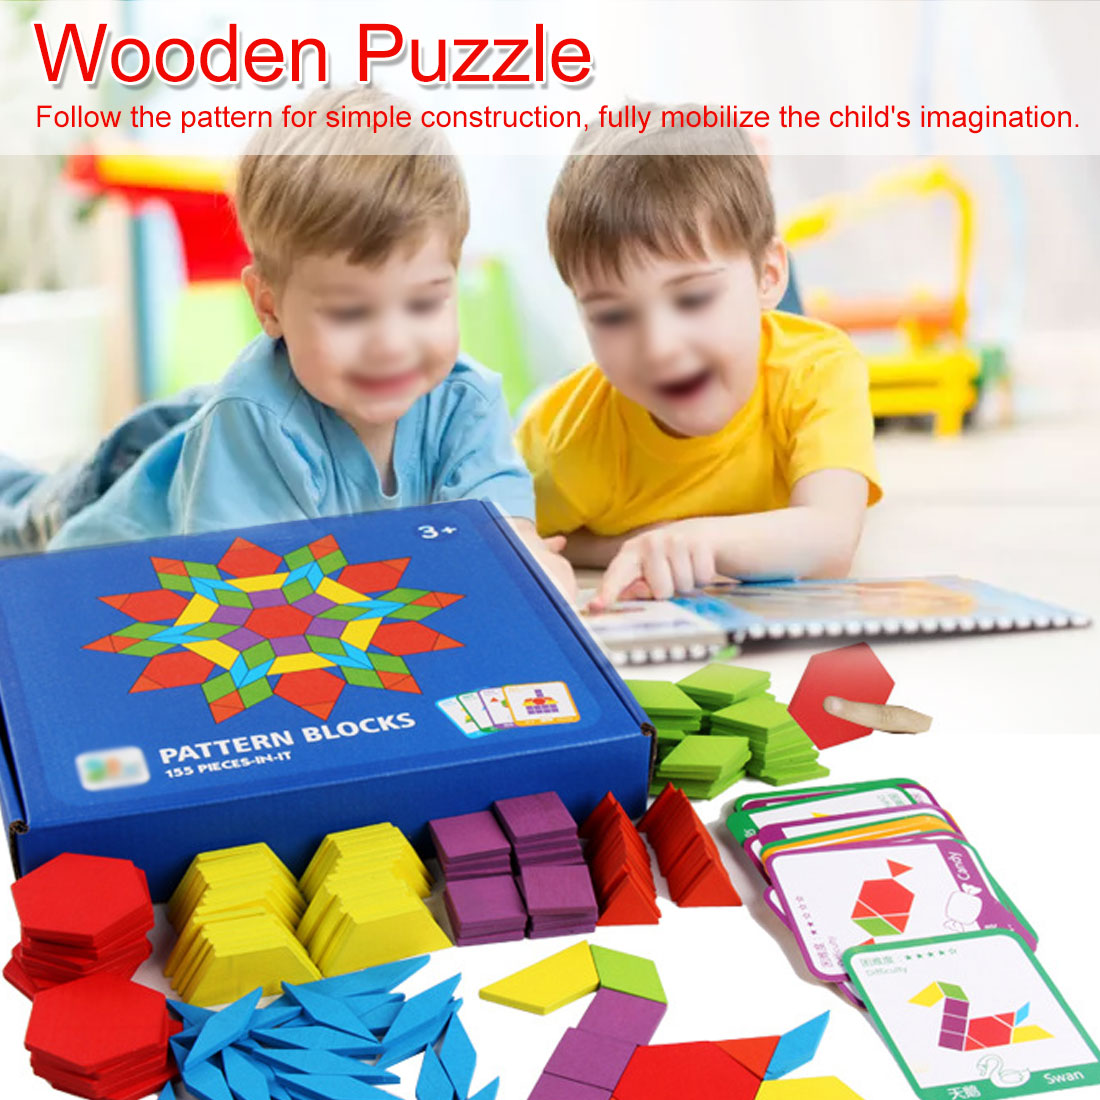 Hot Sale 155pcs Wooden Jigsaw Puzzle Board Set Colorful Baby Educational Toys for Children Learning Developing Toy